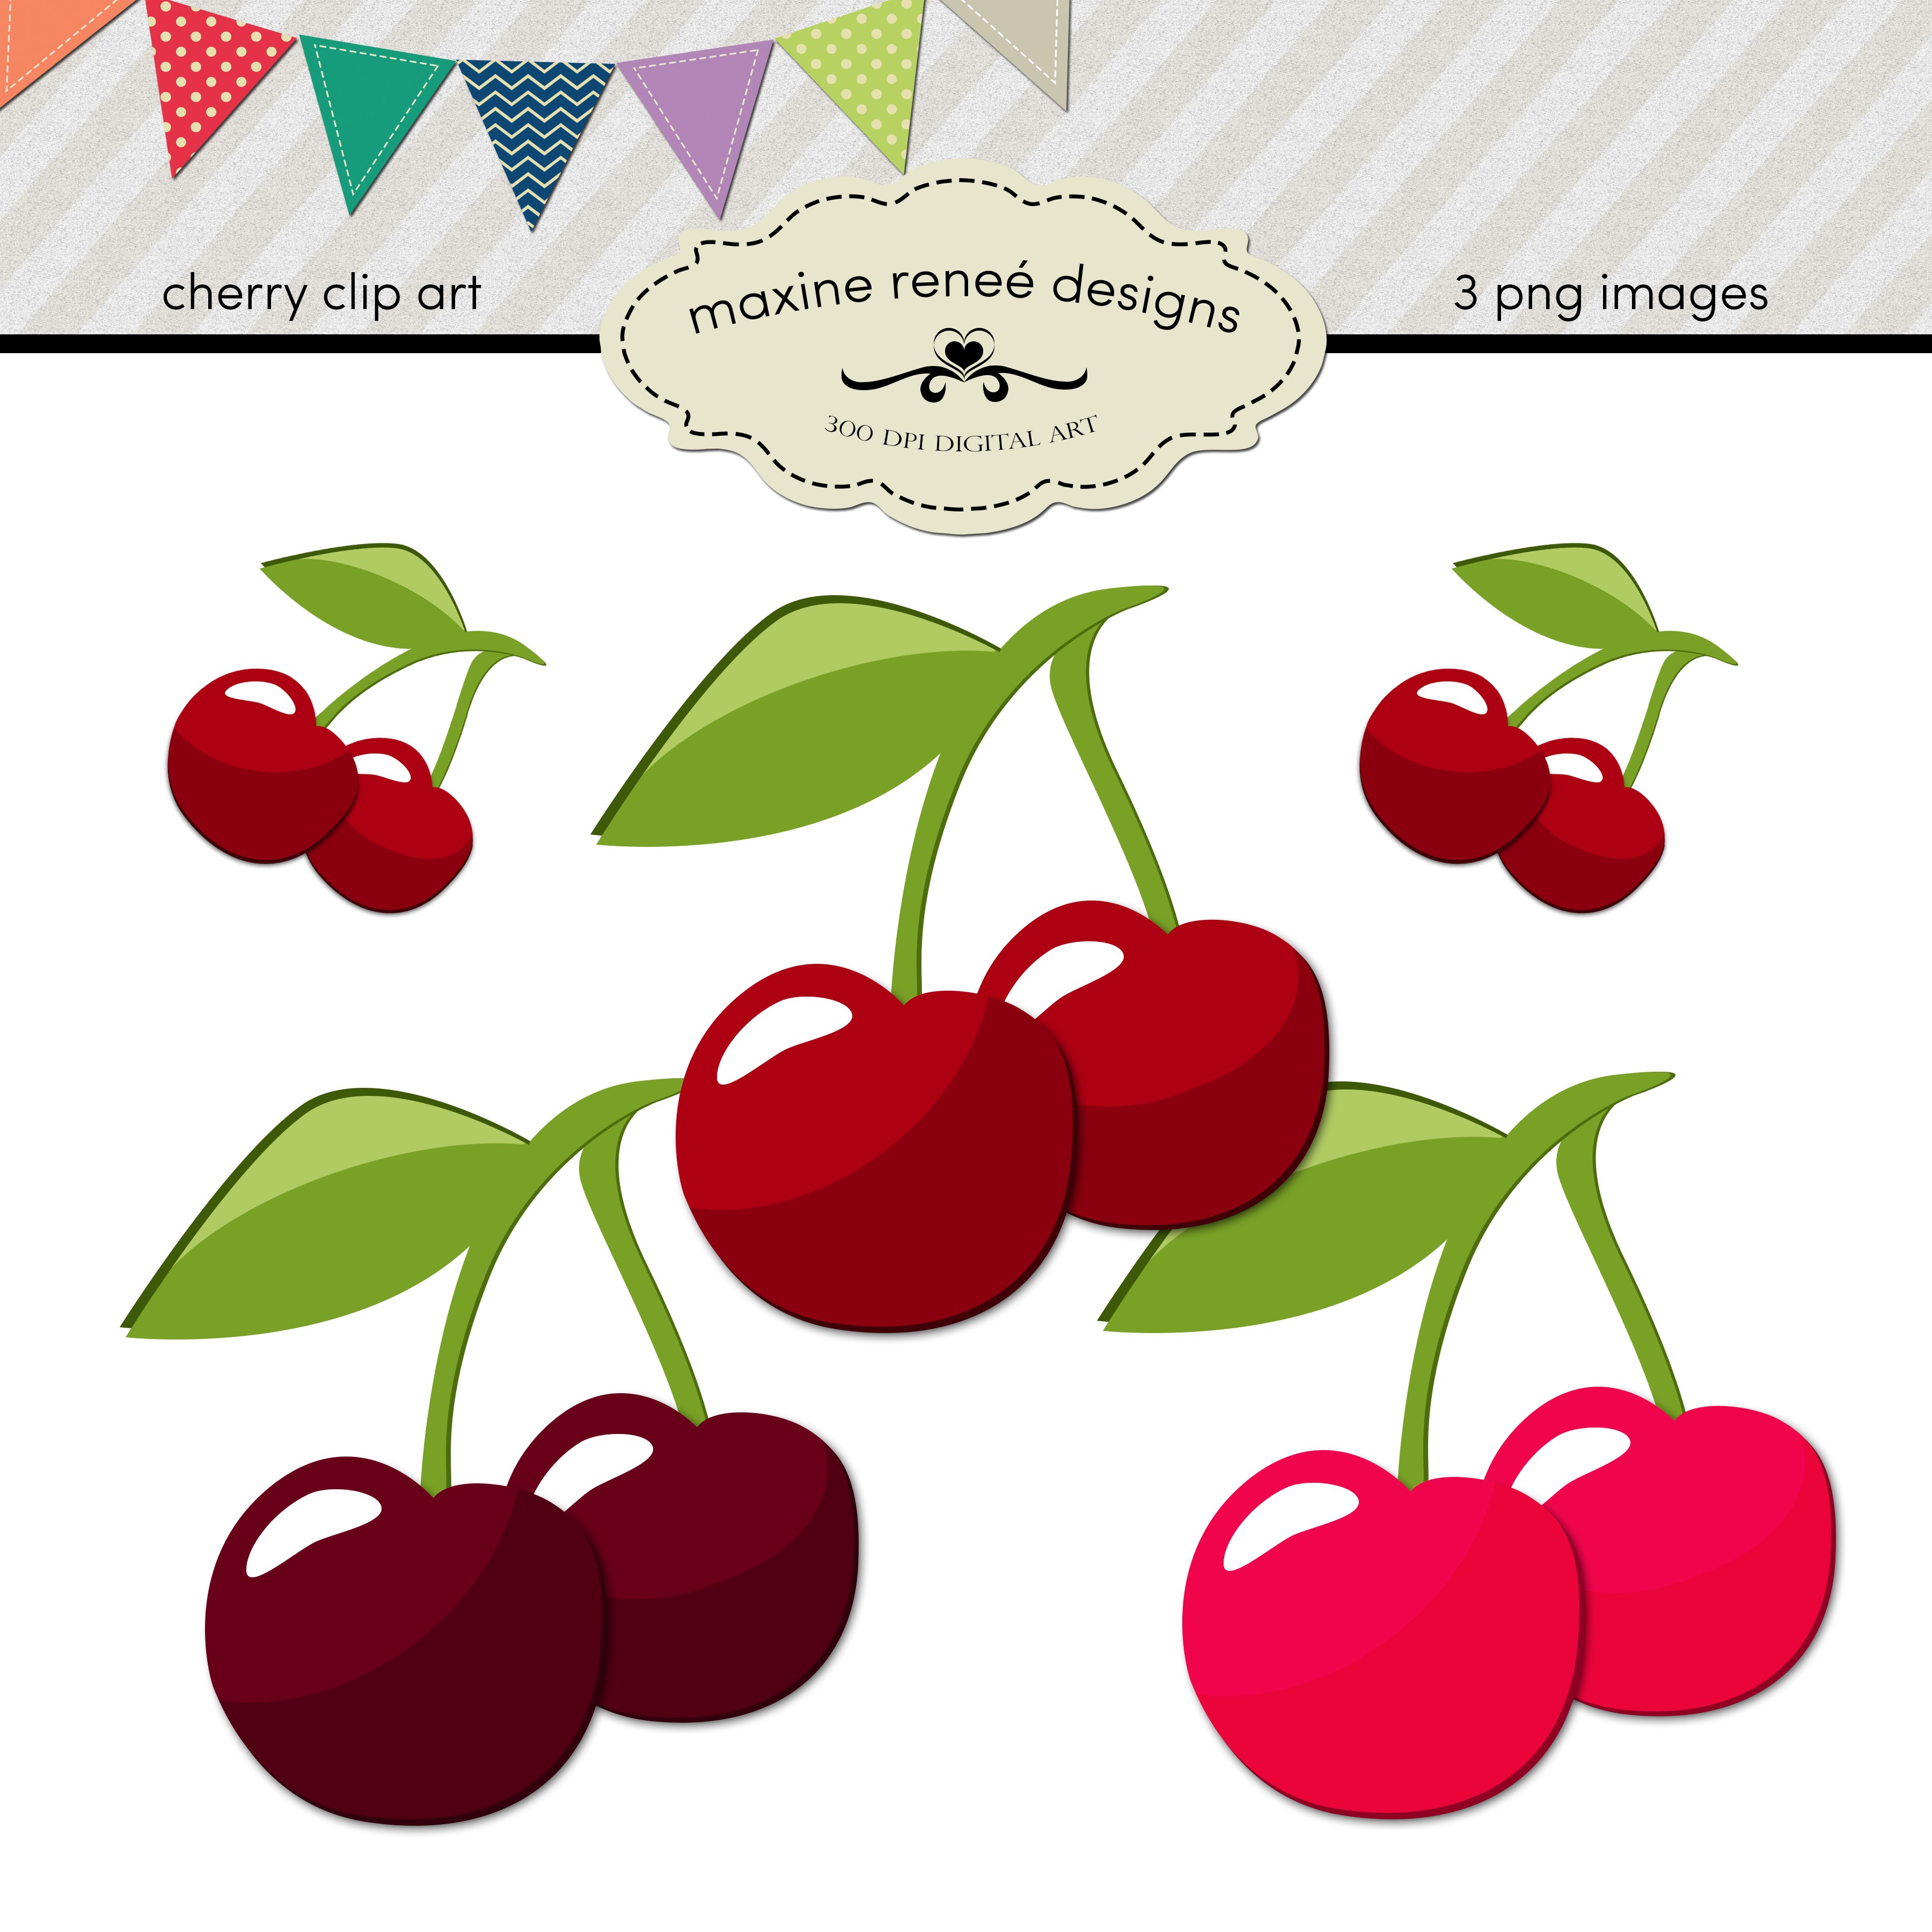 New Cherry Clip Art Here On Etsy